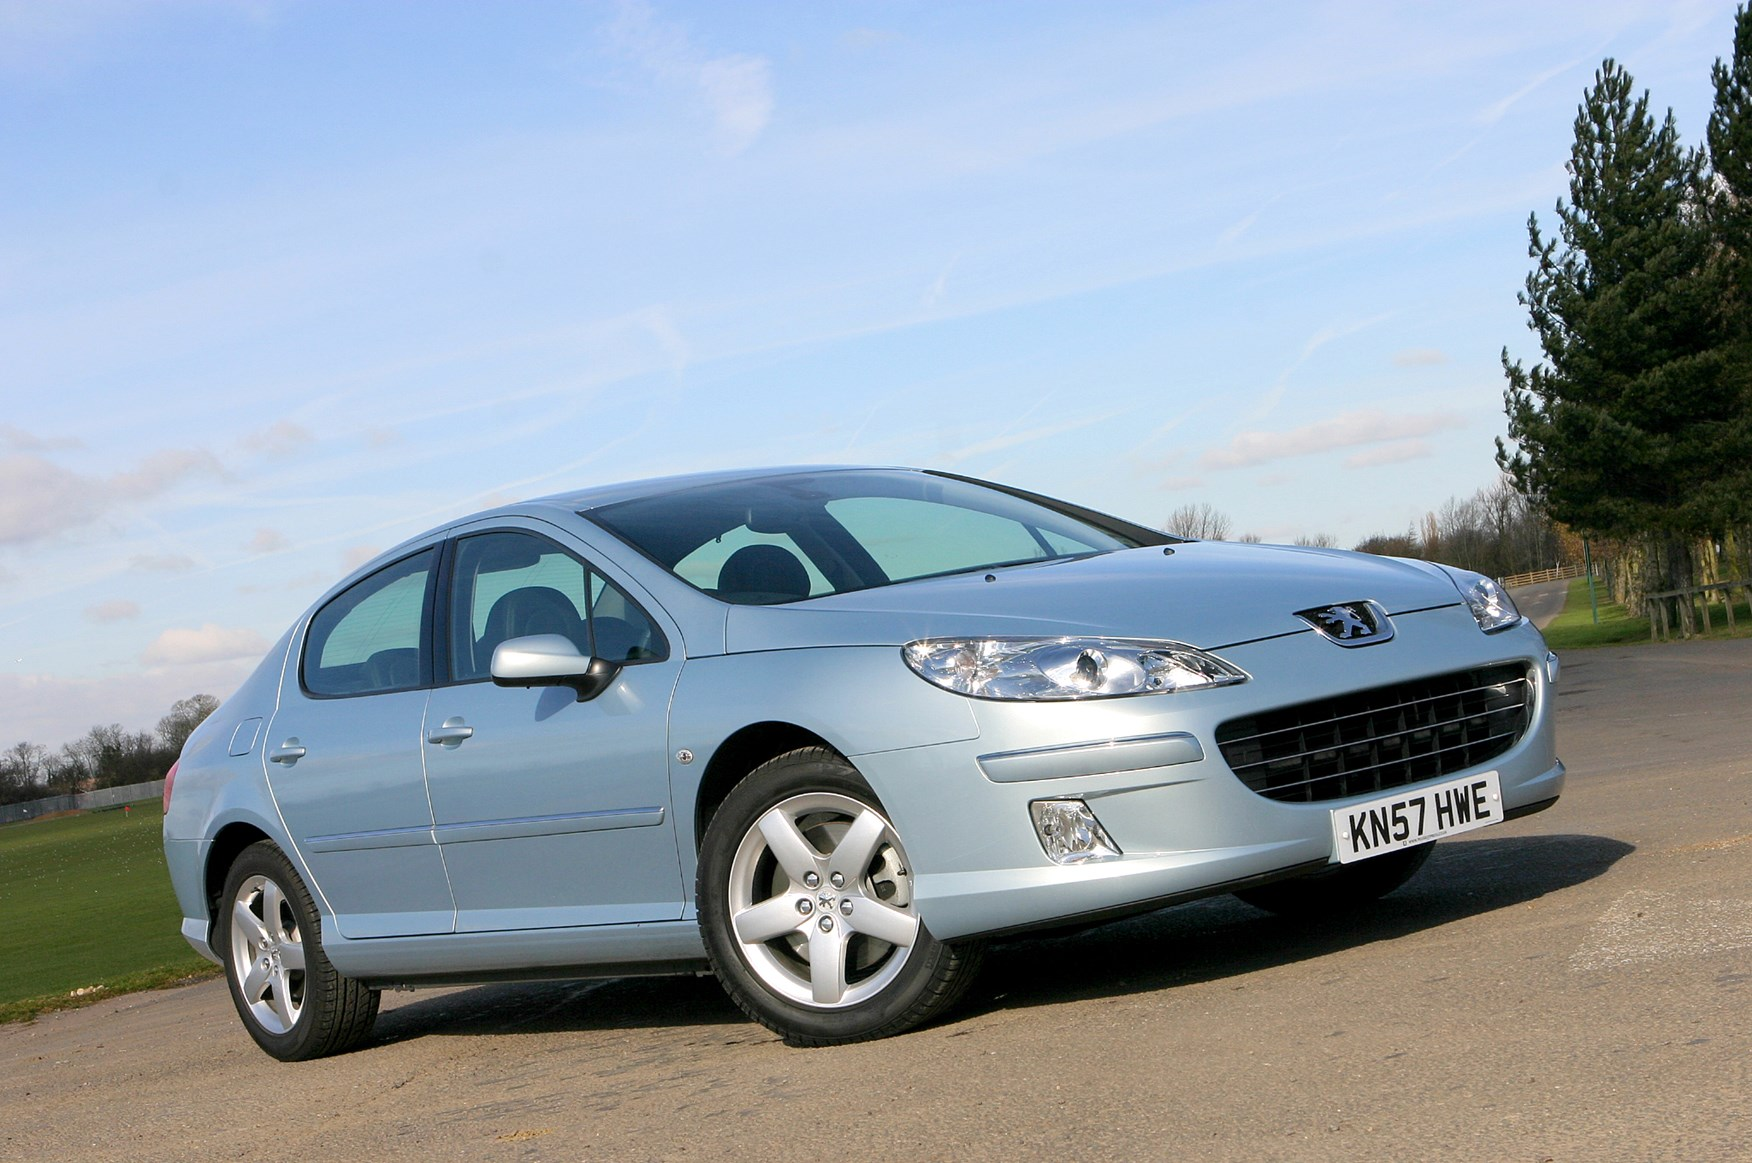 Peugeot 407 Saloon 2004 2011 Driving Performance Parkers 206 Fuse Box Buzzing How Much Is It To Insure